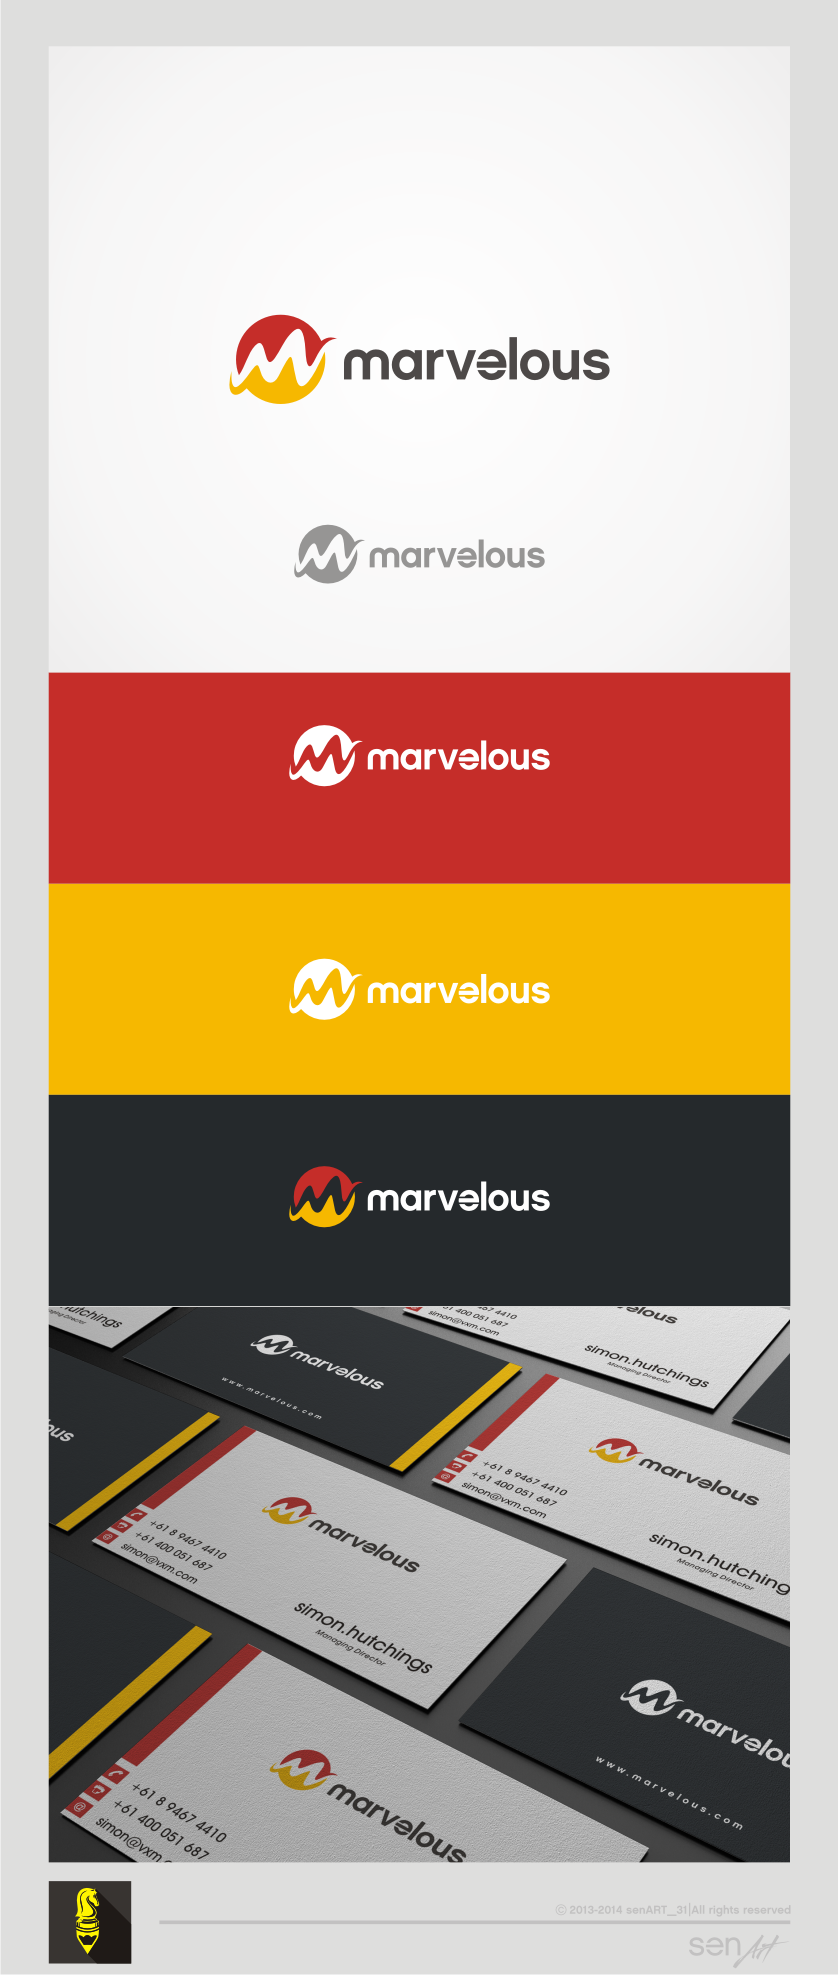 Create a Marvelous logo for a Marvelous company